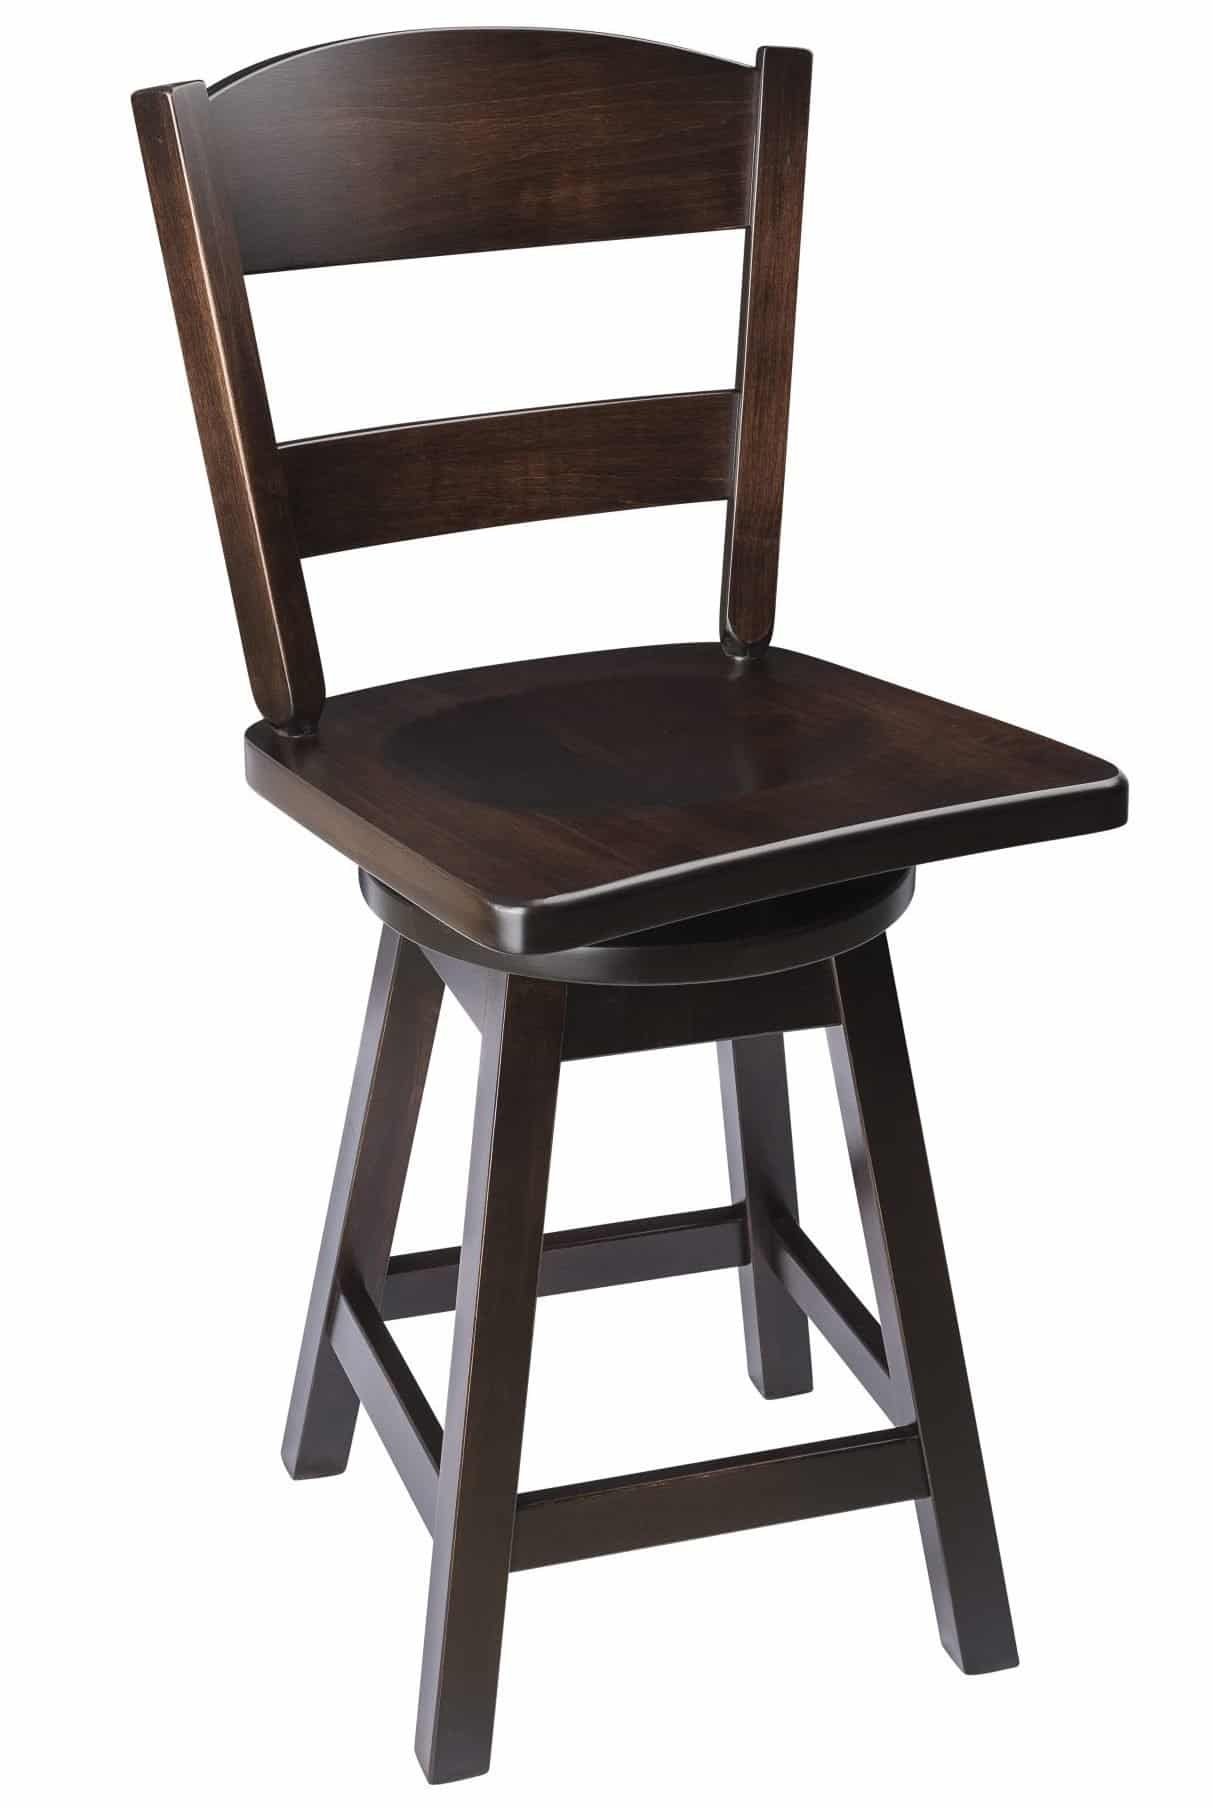 Classic Back Swivel Bar Stool In Maple Wood The Amish Furniture Company